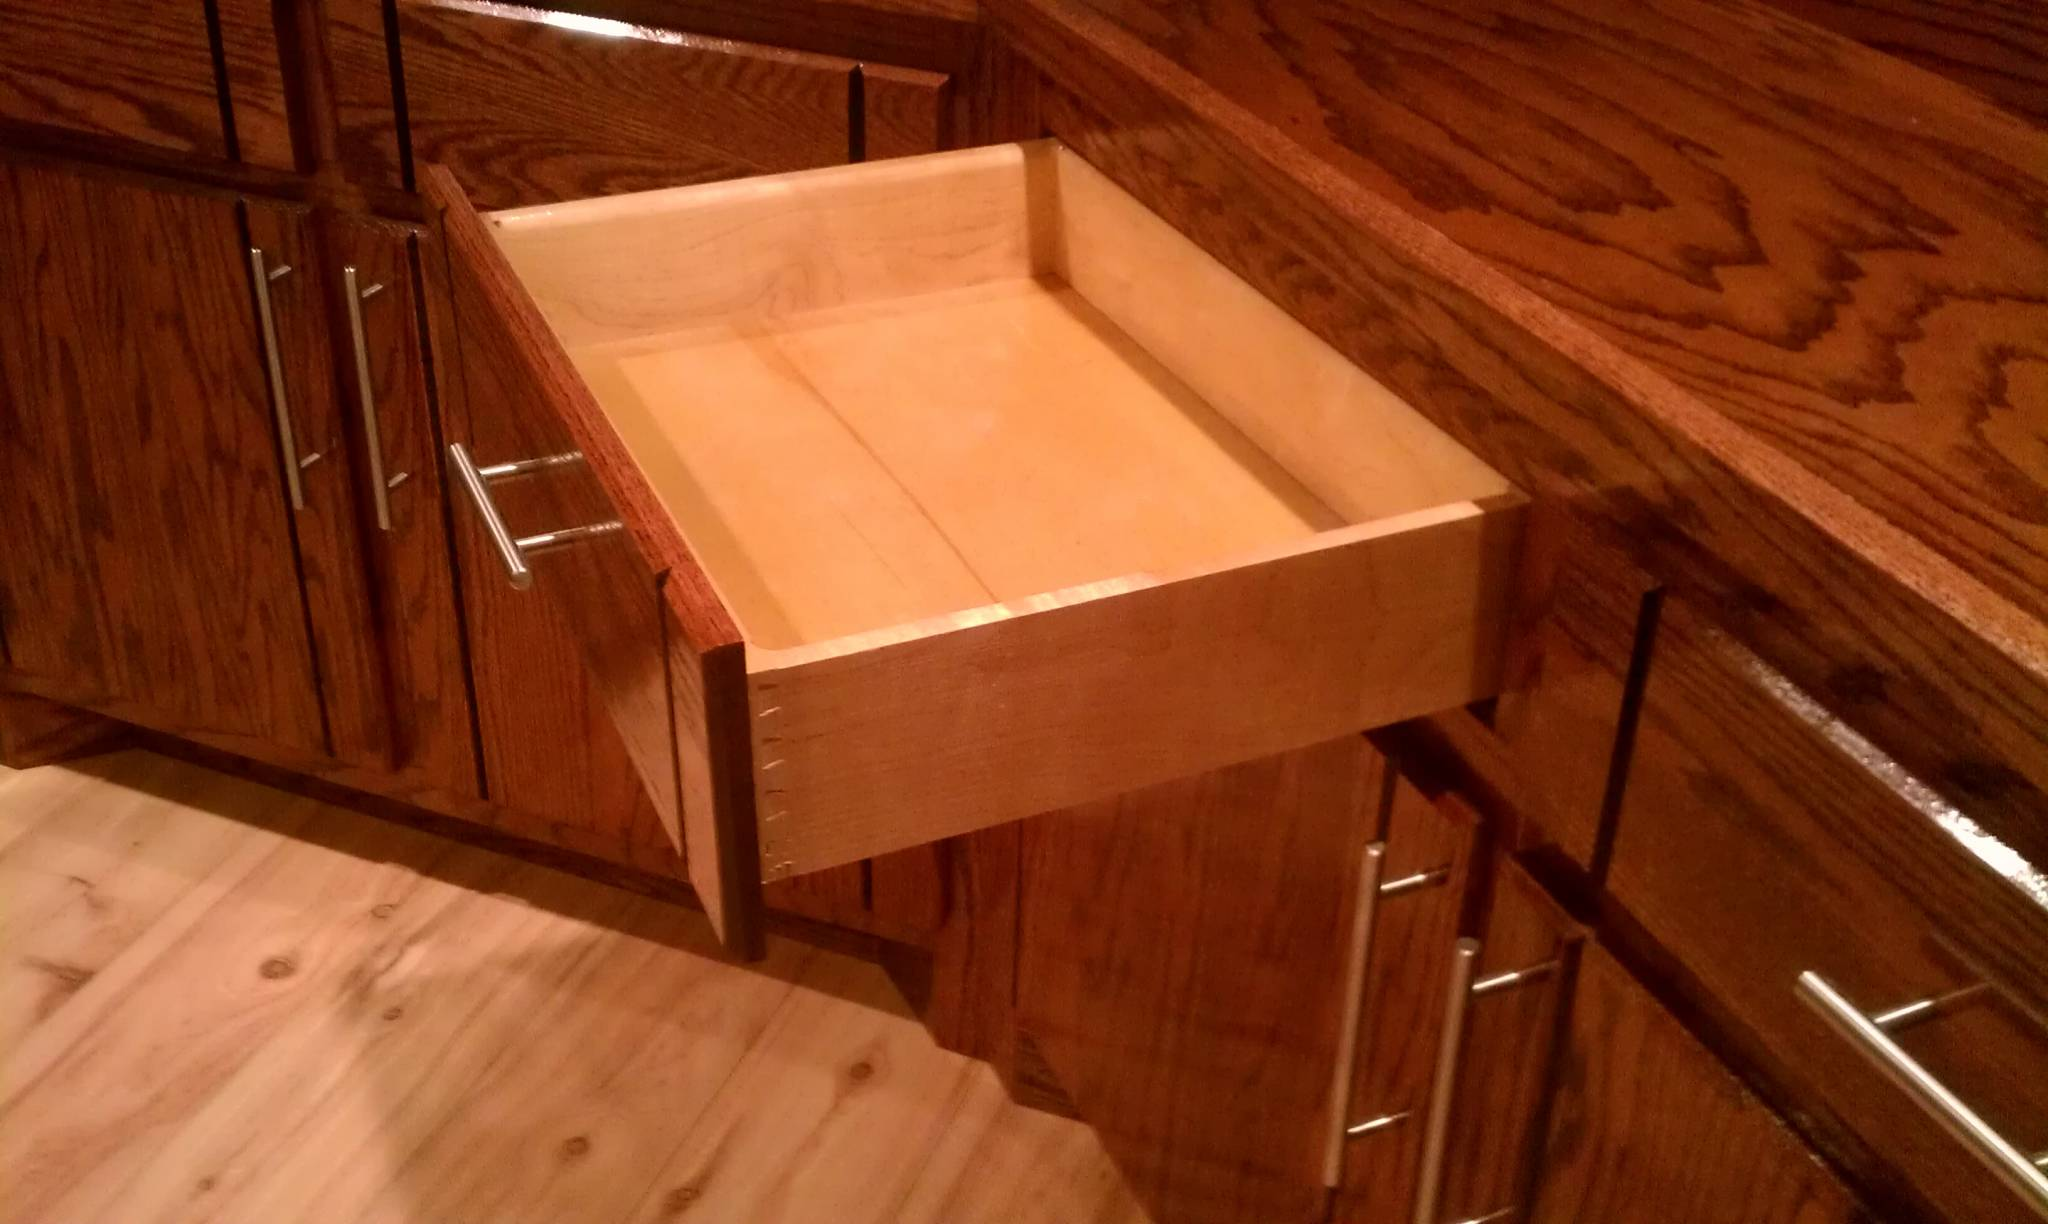 Dovetail Drawer w/ Blum Tandom Self Closing Drawer Guides